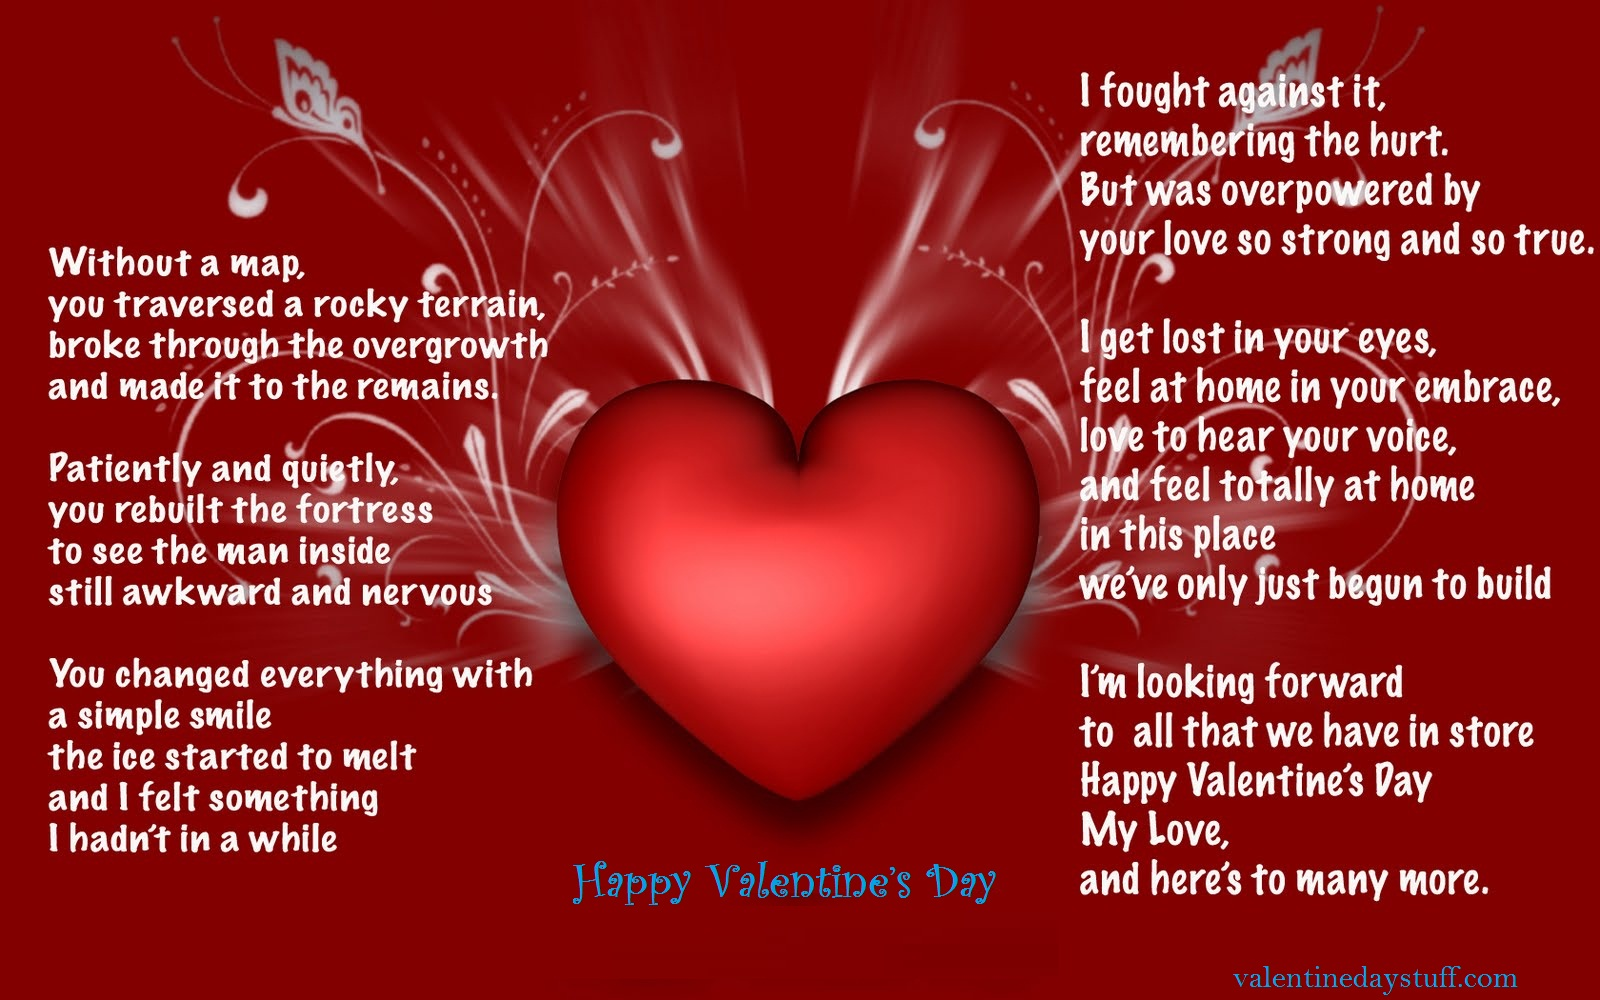 Happy valentines day greeting cards 2018 free download techicy download valentine day greeting card kristyandbryce Choice Image